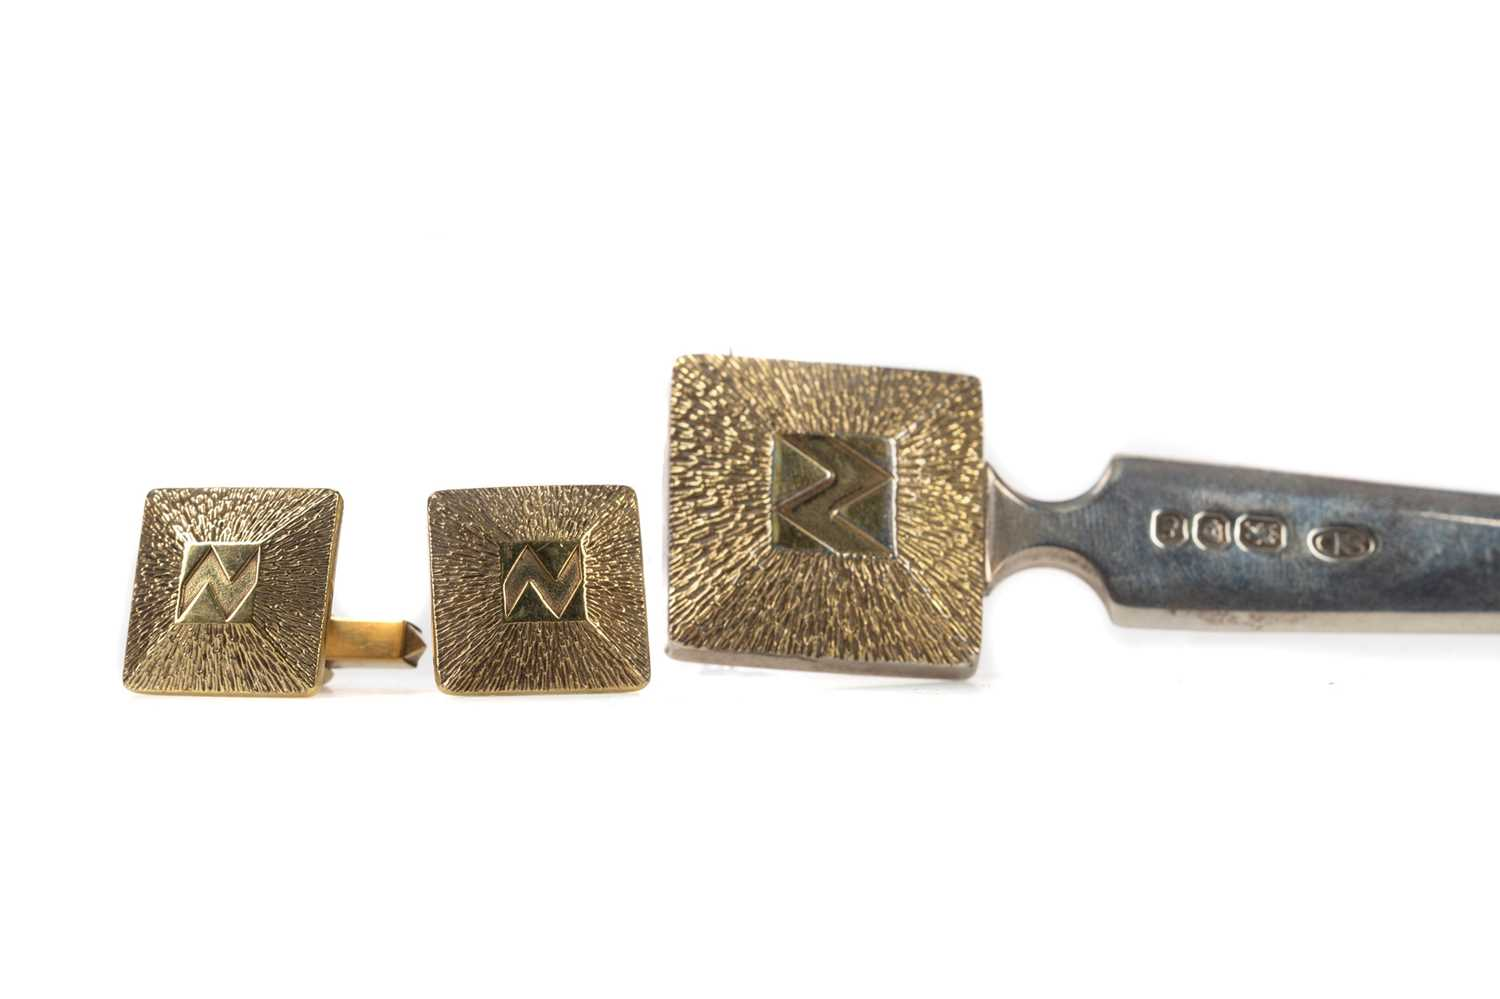 Lot 460 - A PAIR OF  STUART DEVLIN SILVER GILT CUFFLINKS ALONG WITH A MATCHED LETTER OPENER